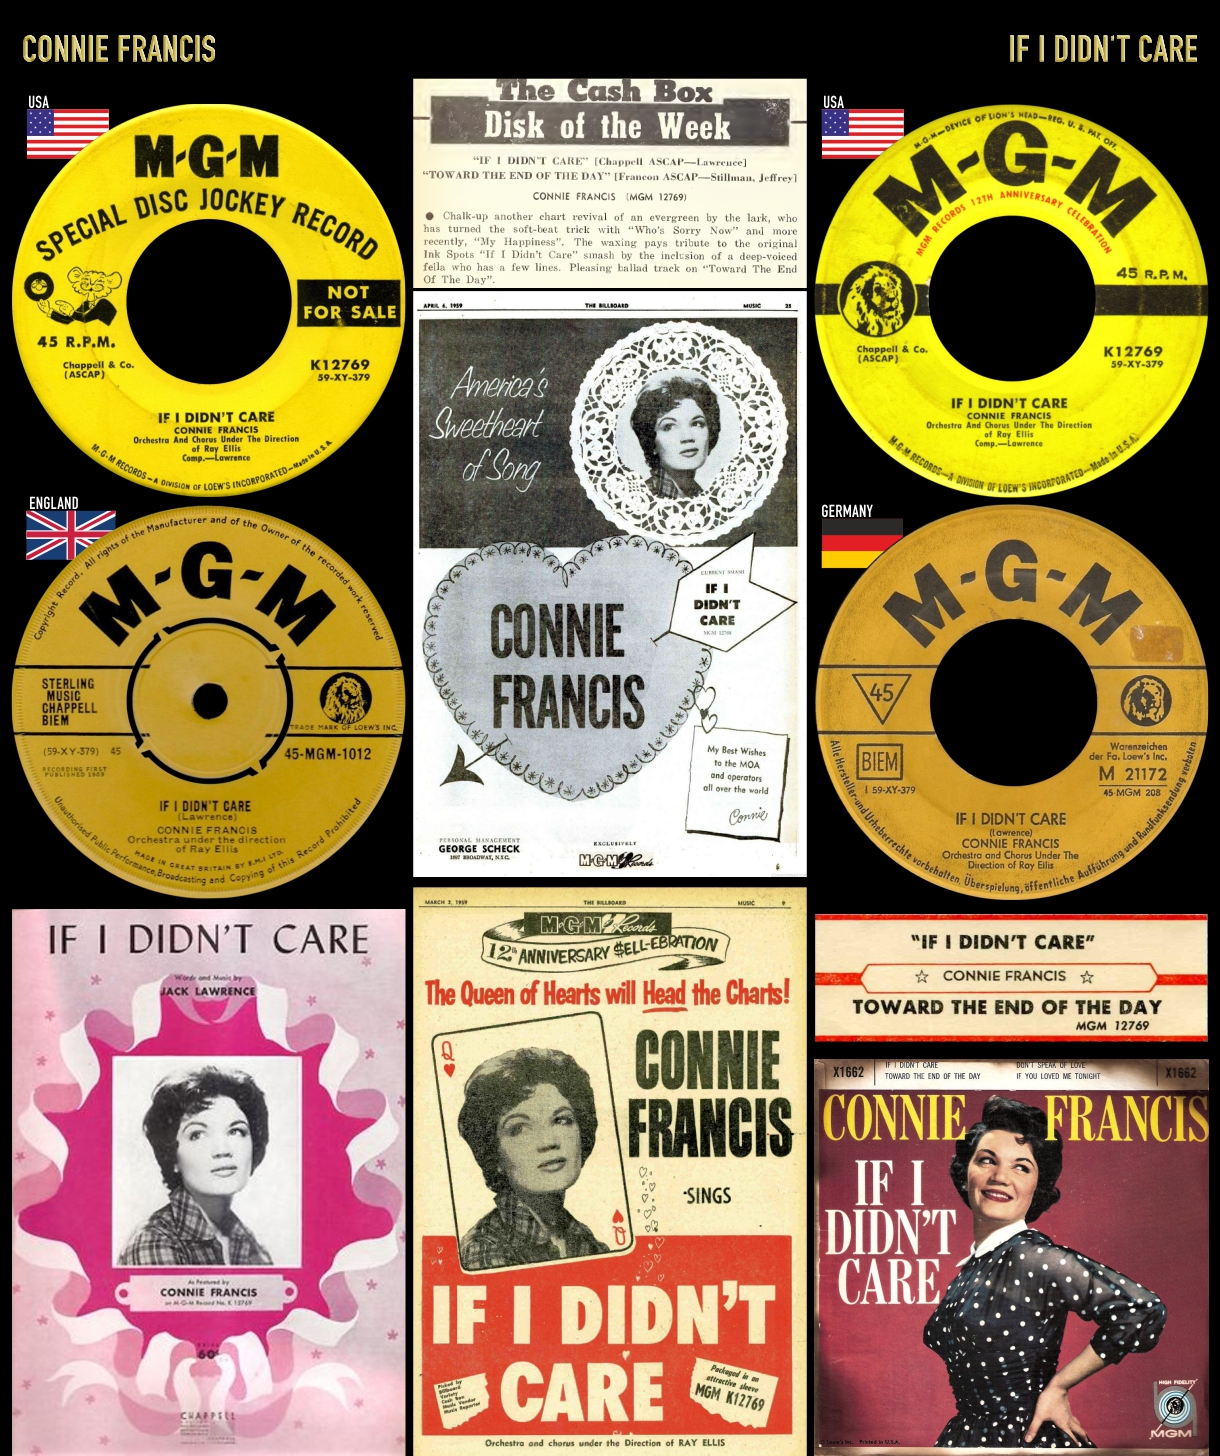 590228_Connie Francis_If I Didn't Care